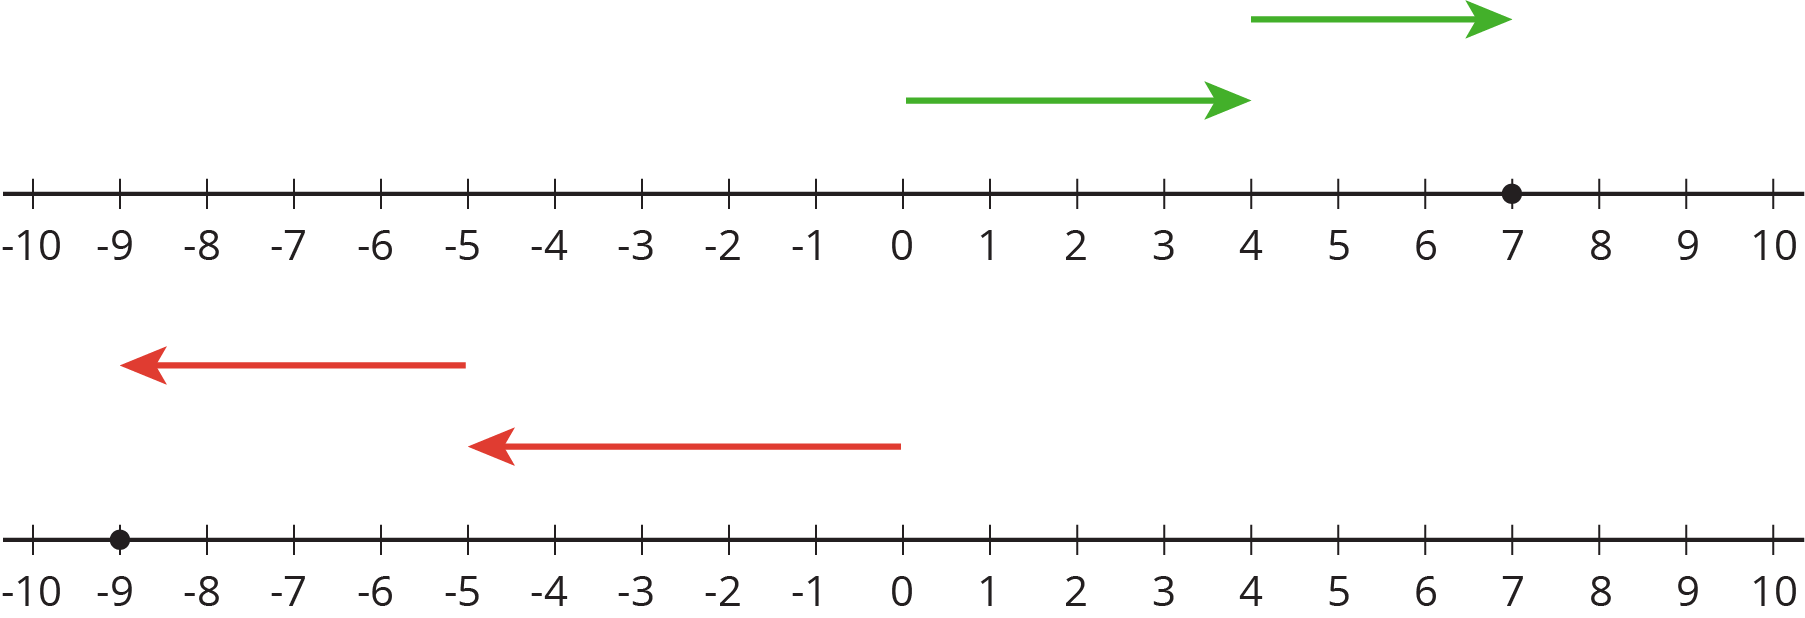 Two identical number lines with the numbers negative 10 through 10 indicated.  On the top number line, an arrow starts at 0, points to the right, and ends at 4. A second arrow starts at 4, points to the right, and ends at 7. There is a solid dot indicated at 7.  On the bottom number line, an arrow starts at 0, points to the left, and ends at negative 5. A second arrow starts at negative 5, points to the left, and ends at negative 9. There is a solid dot indicated at negative 9.